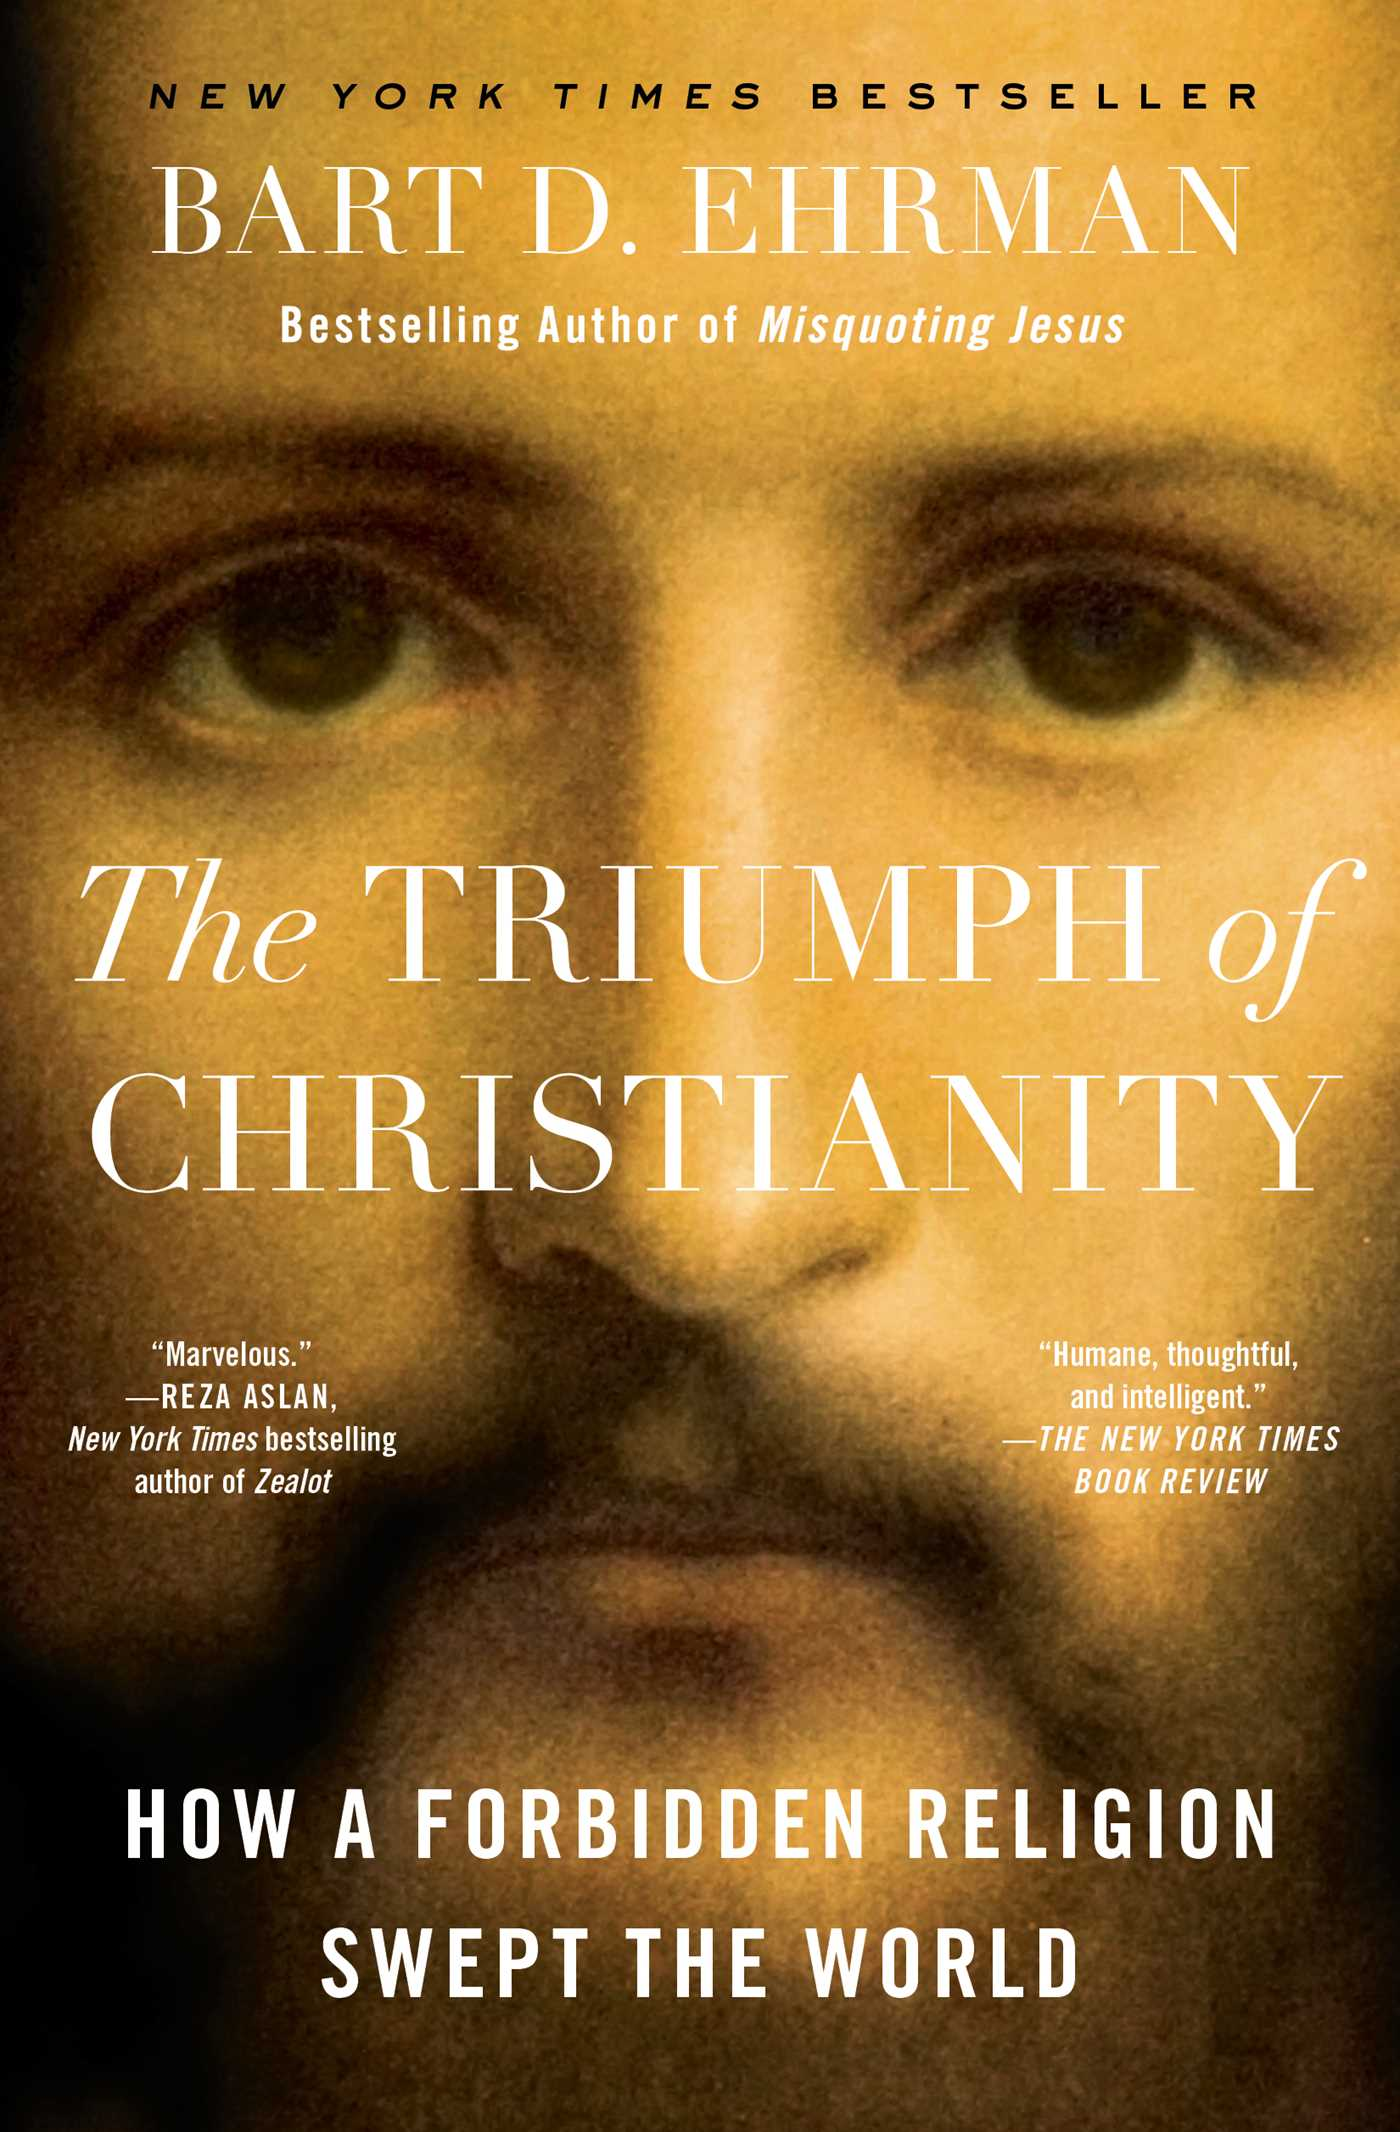 The Triumph of Christianity [electronic resource] : How a Forbidden Religion Swept the World